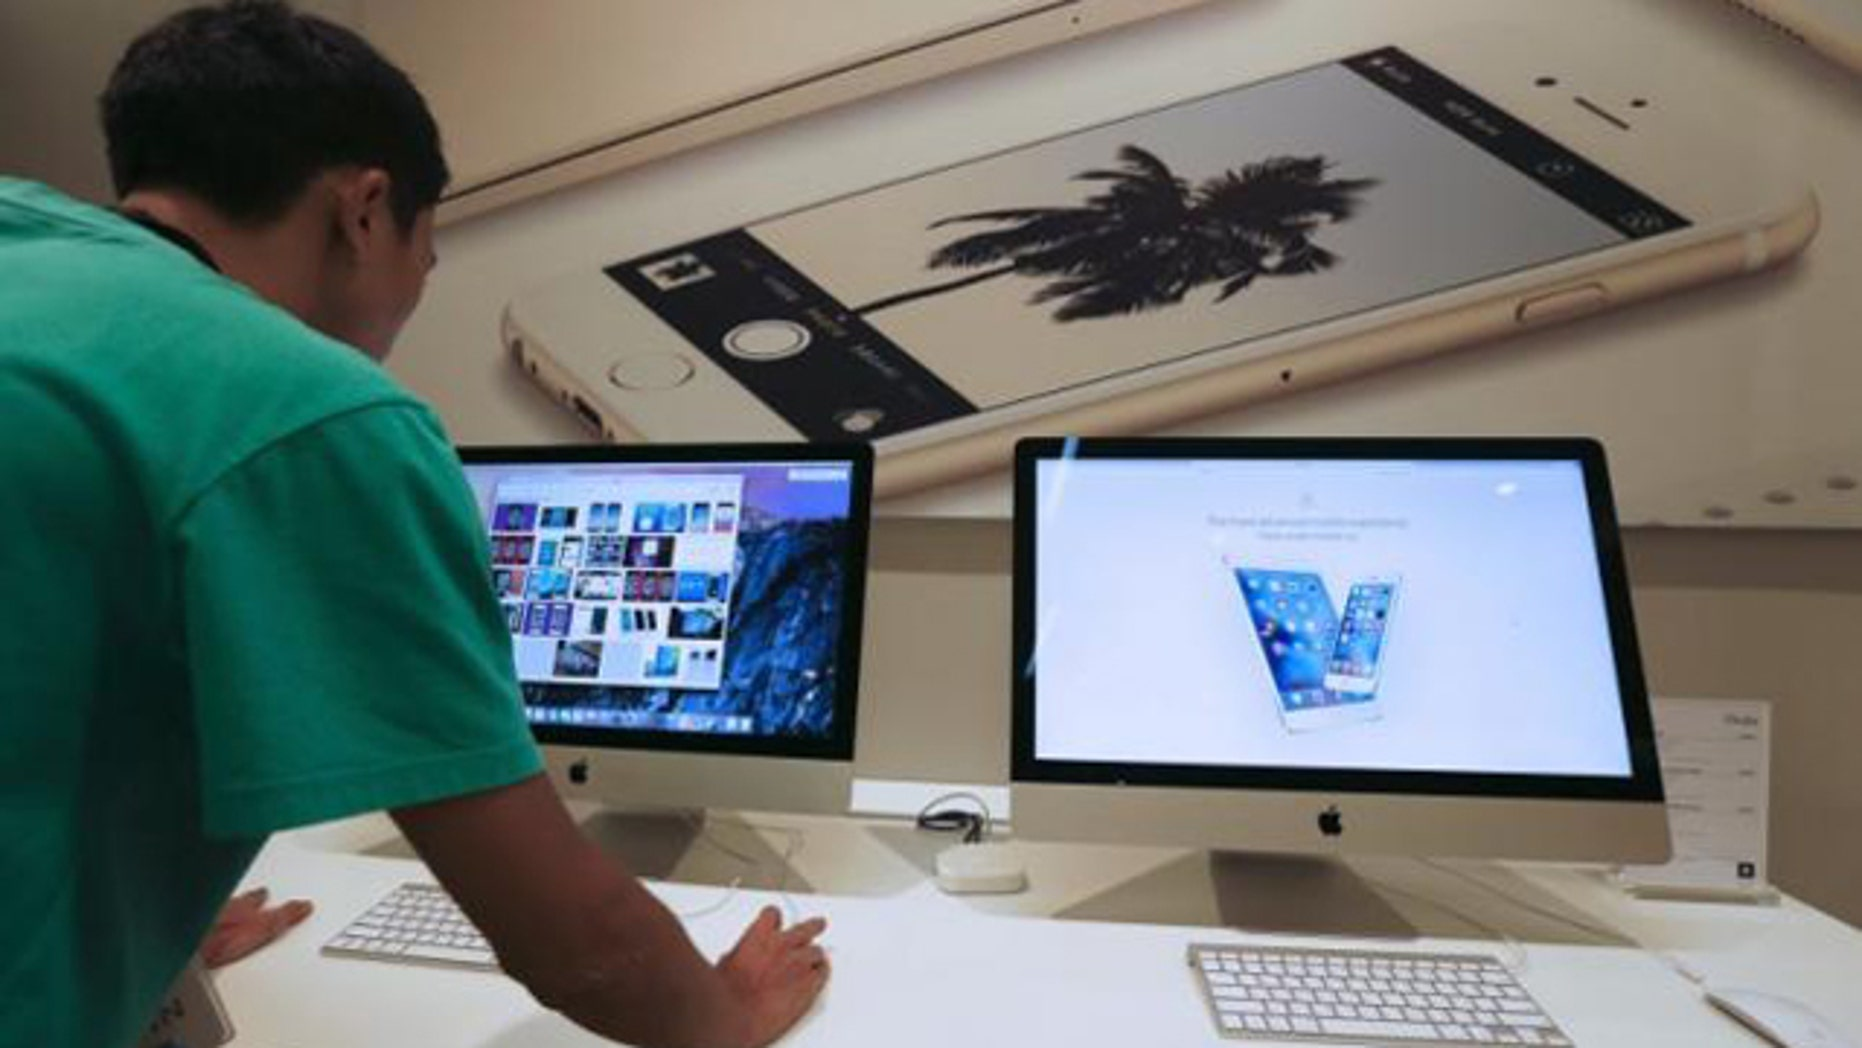 Sept. 18, 2015: A sales assistant shows features of iOS 9 on an Apple iMac at an Apple reseller shop in Bangkok. (Reuters/Chaiwat Subprasom)